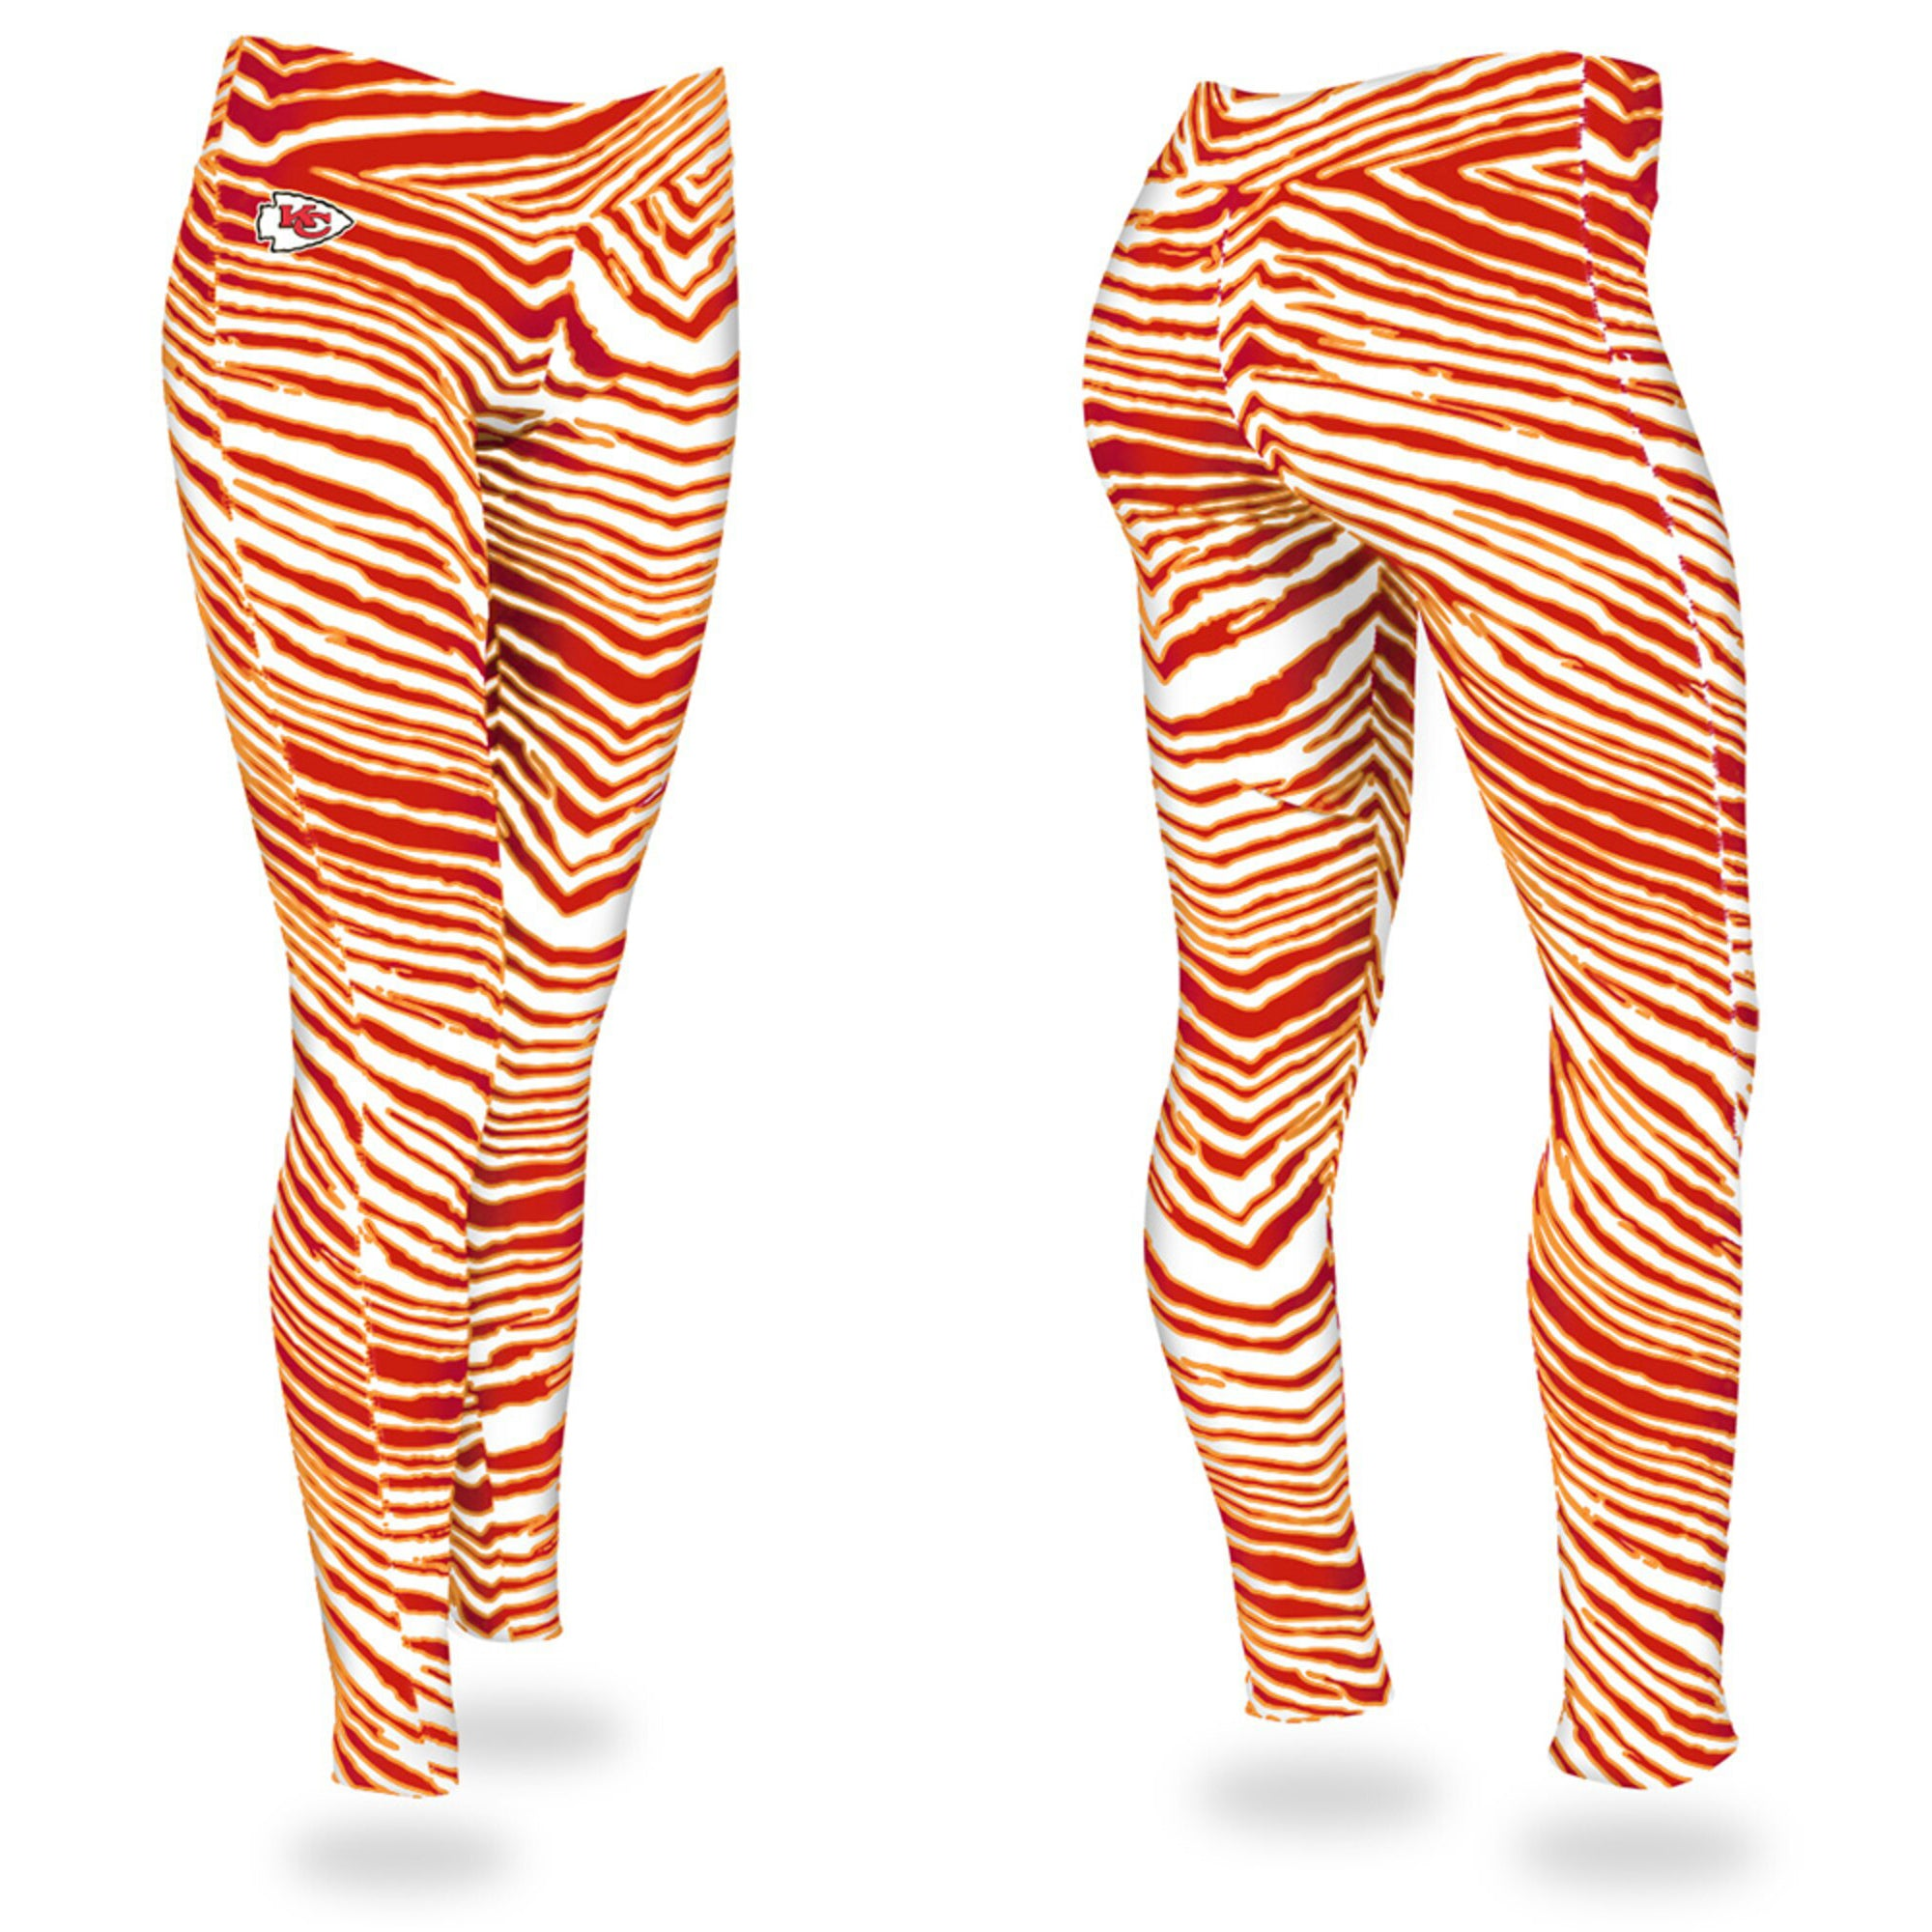 brandsego - Zubaz Zebra Print Slim Fit Trousers For Ladies-Red/Orange-NA9255